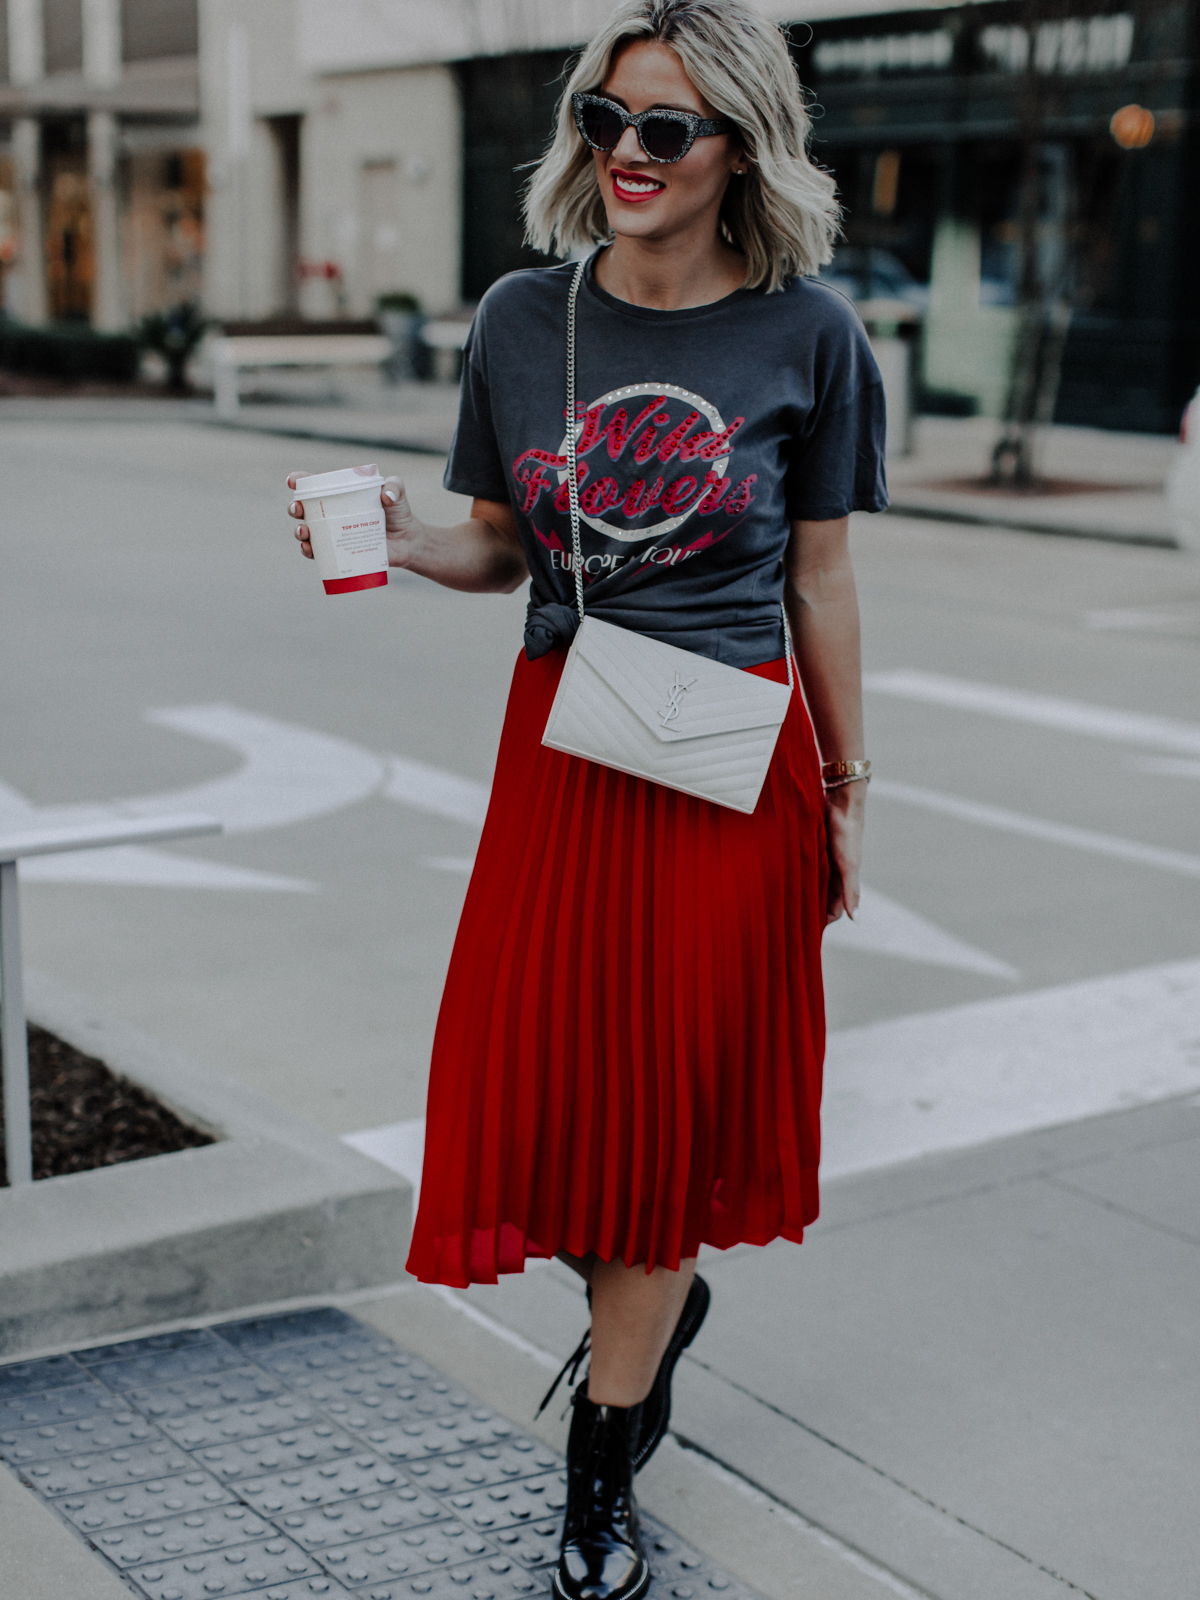 red edgy valentines day outfit on Sage Coralli of So Sage Blog